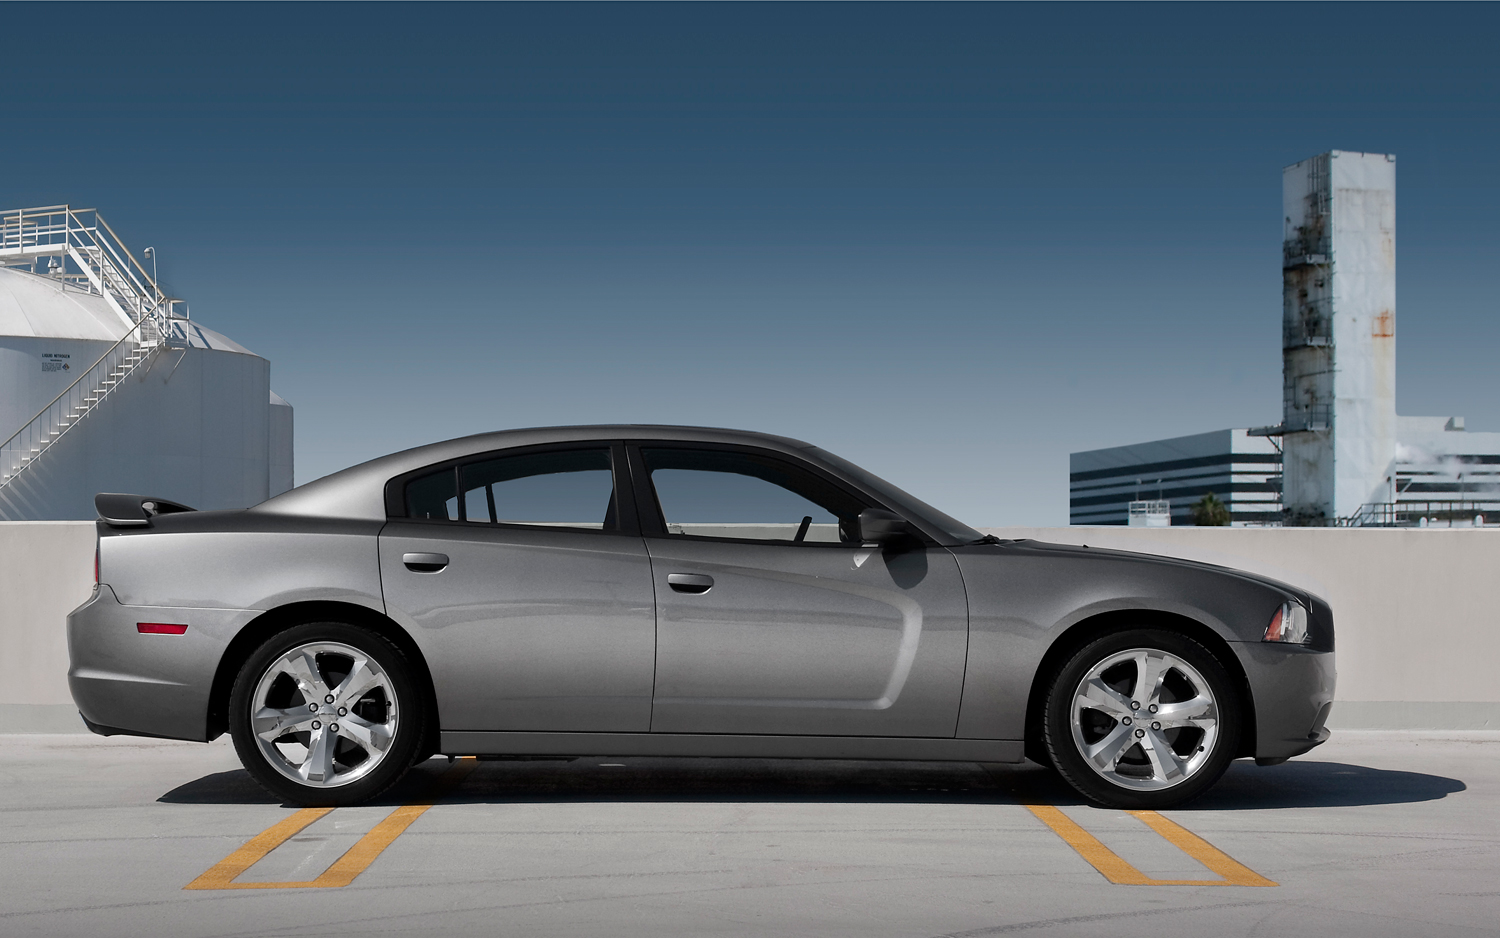 2012 Dodge Charger #5